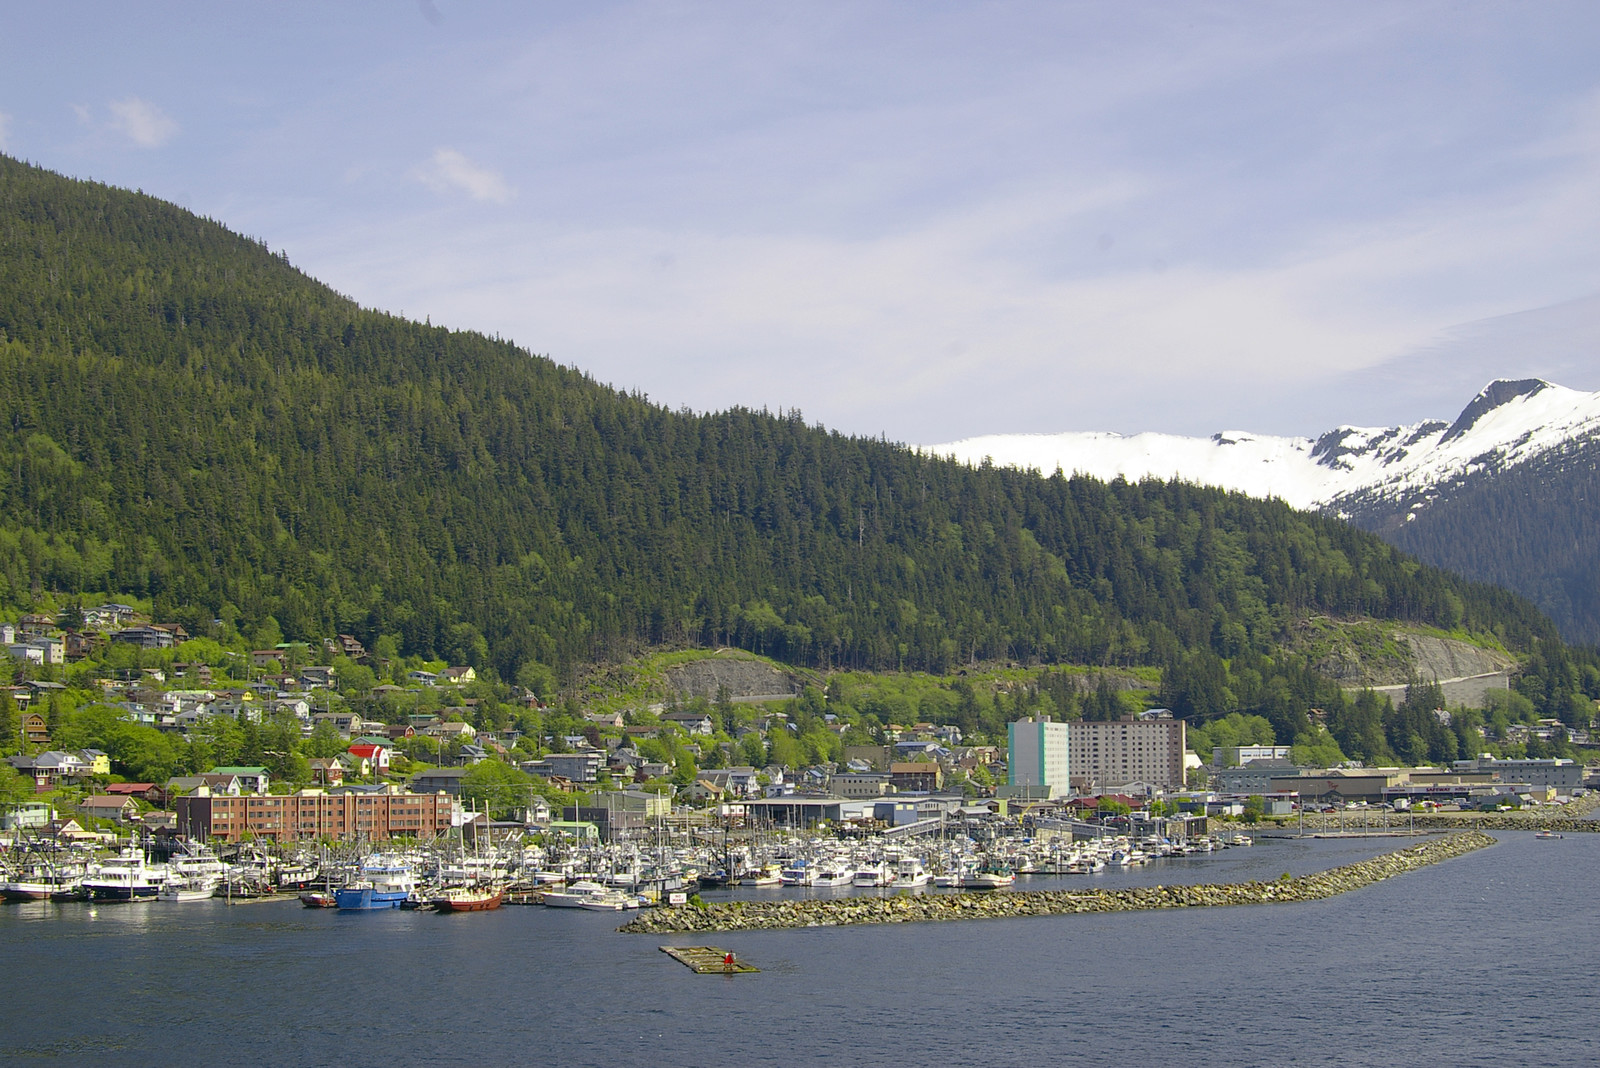 Ketchikan city and harbor with trees built into the hillside and evergreen hills in the background with blue skies